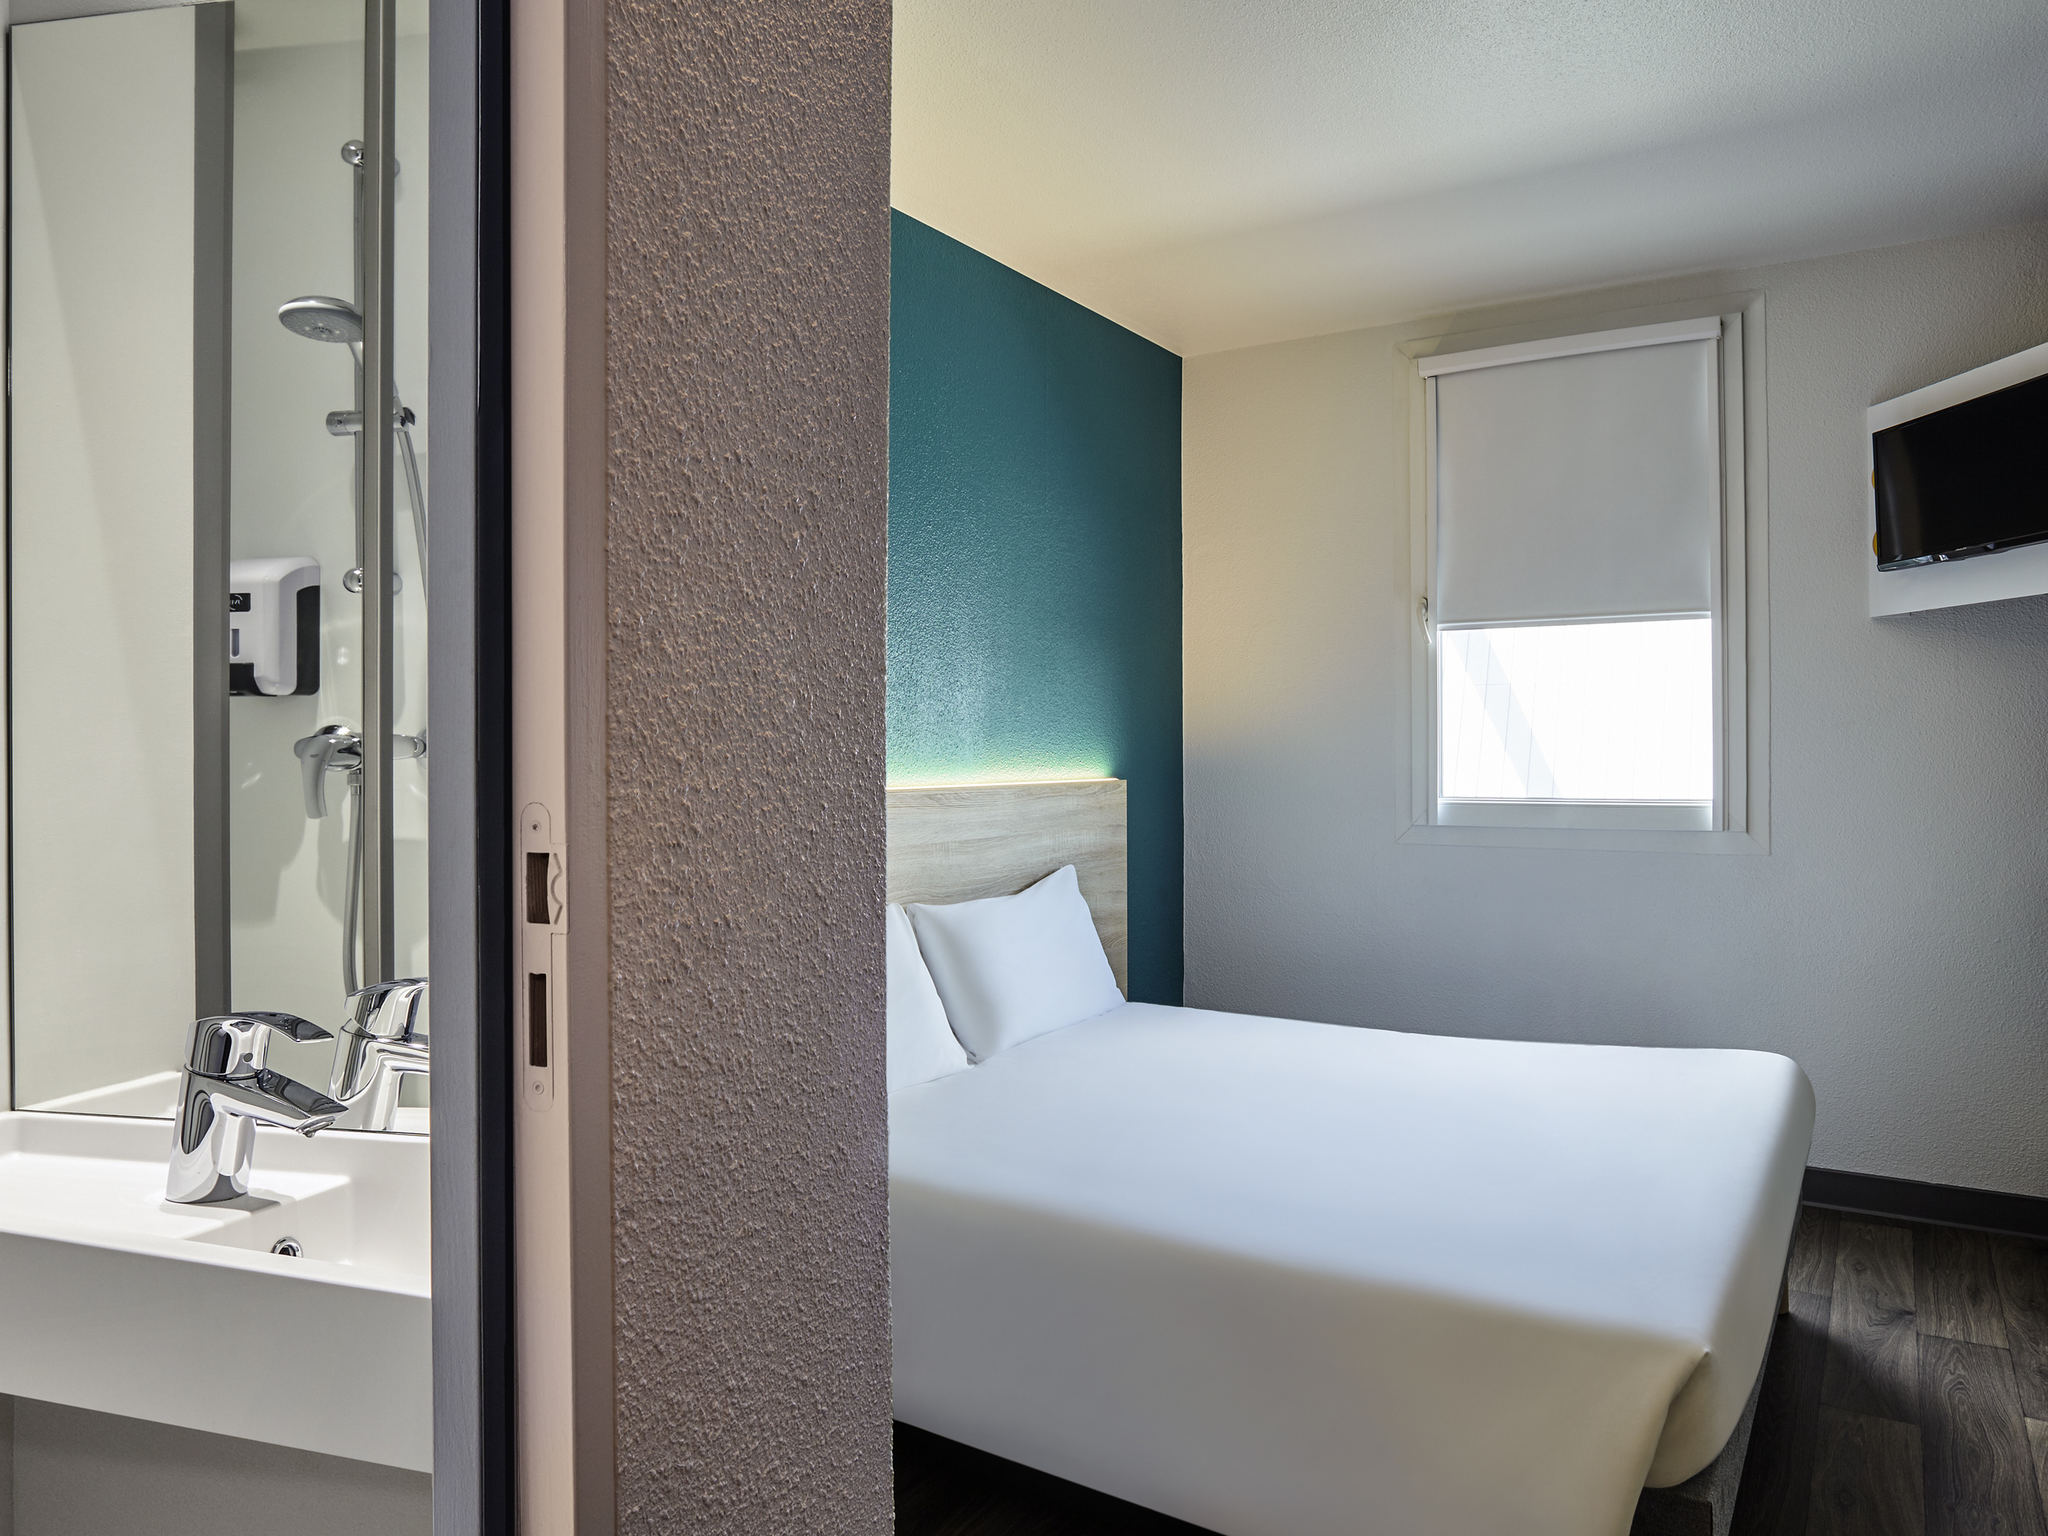 Hotell – hotelF1 Rouen Louviers Le Vaudreuil